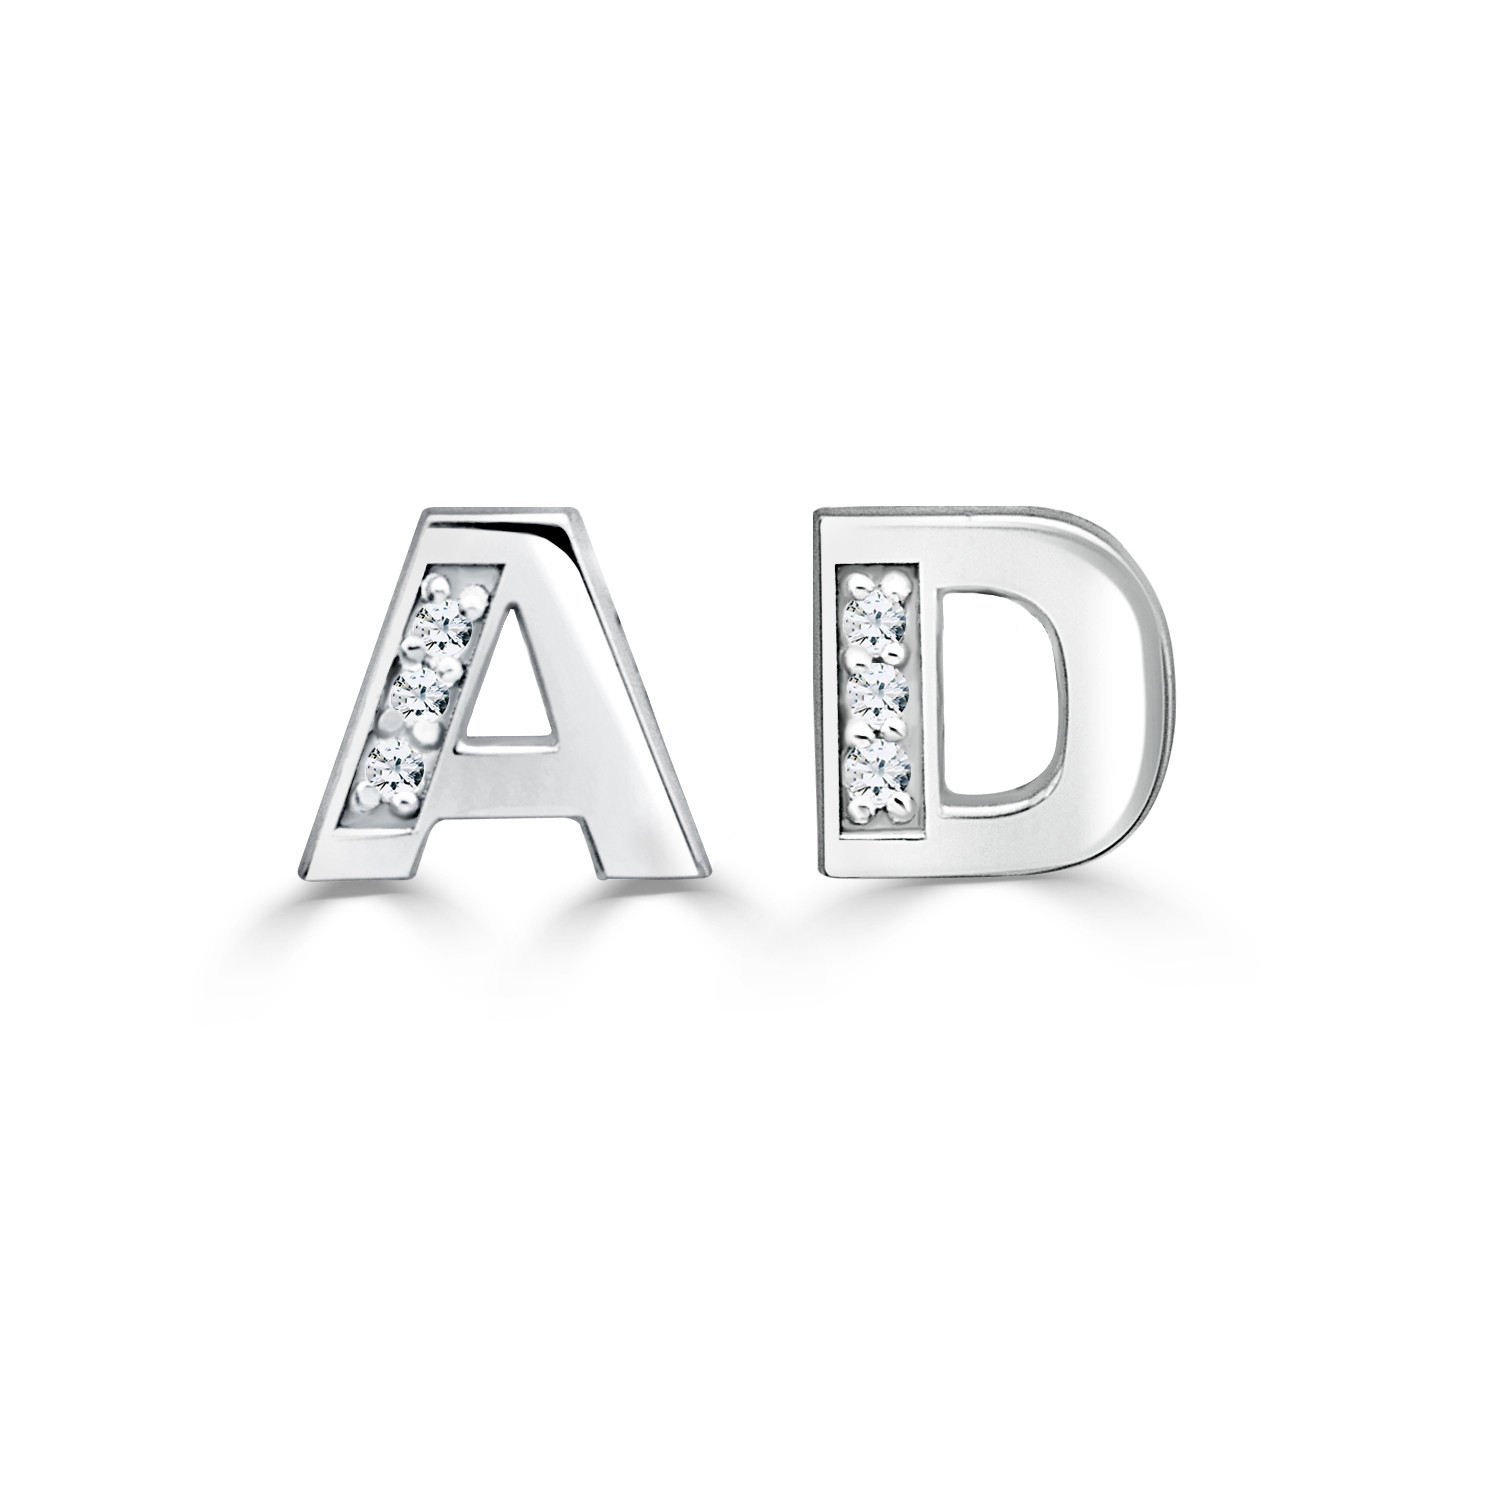 0188e94ad Diamond Accent 6.0mm Block Initial Stud Earrings (2 Initials)    Personalized Earrings   Create Your Own   Zales